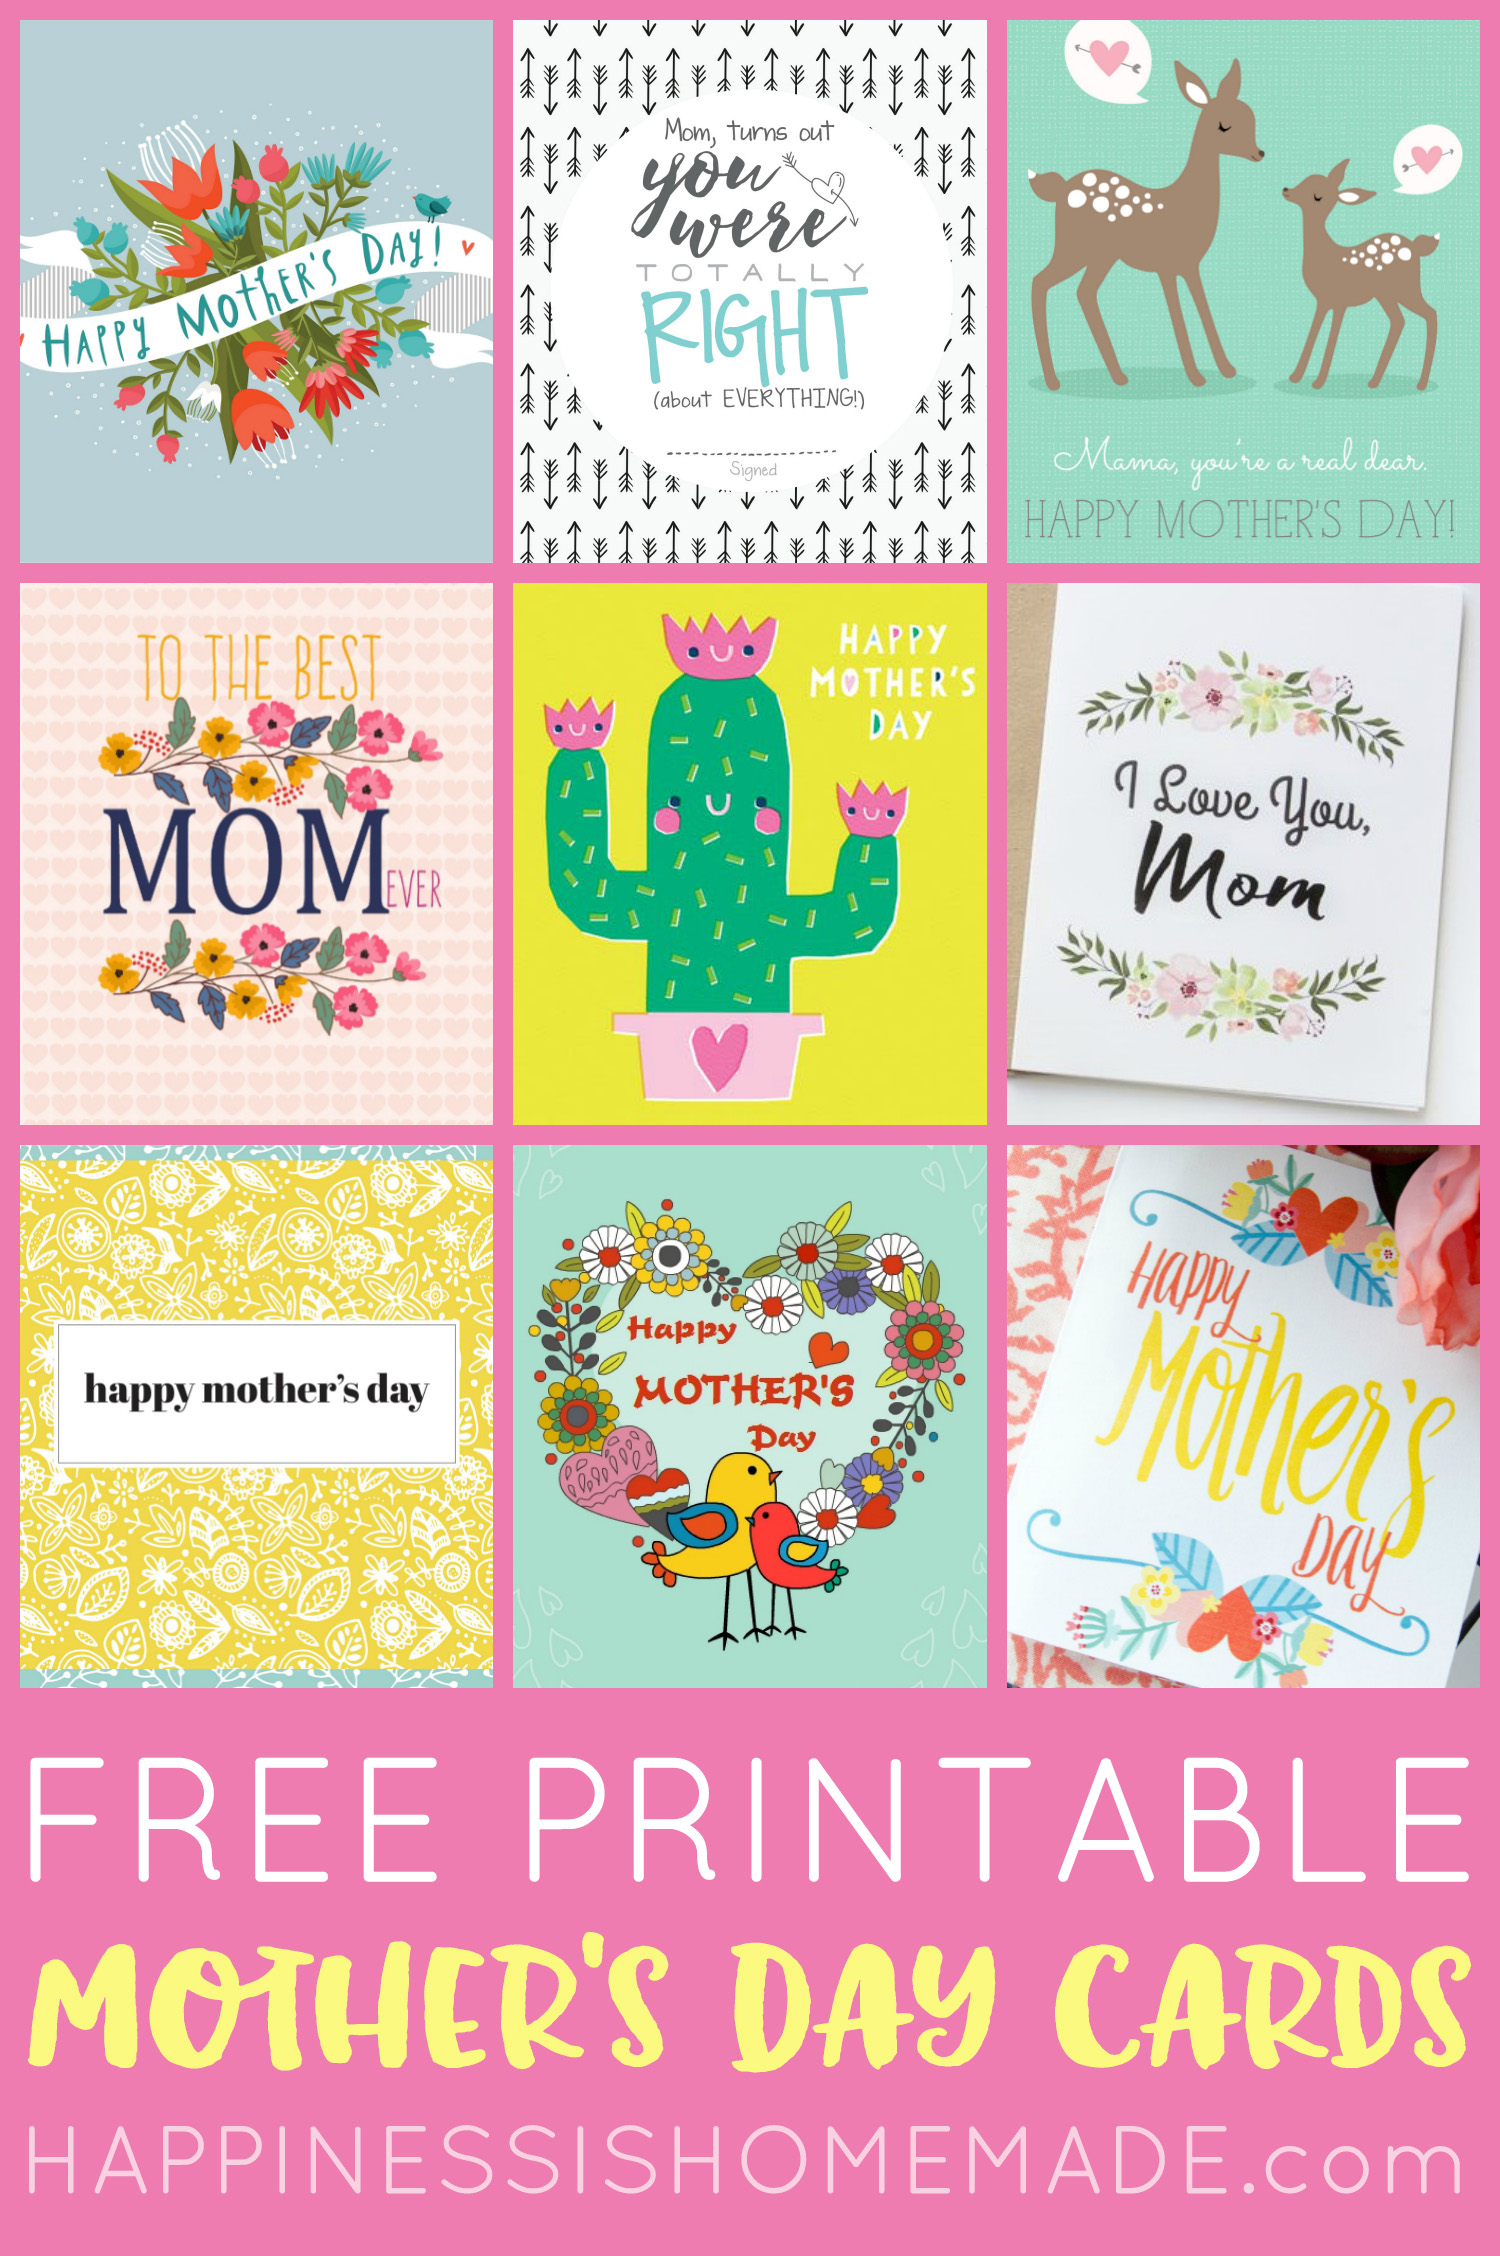 photo regarding Printable Mothers Day Cards to Color titled Free of charge Printable Moms Working day Playing cards - Joy is Do-it-yourself